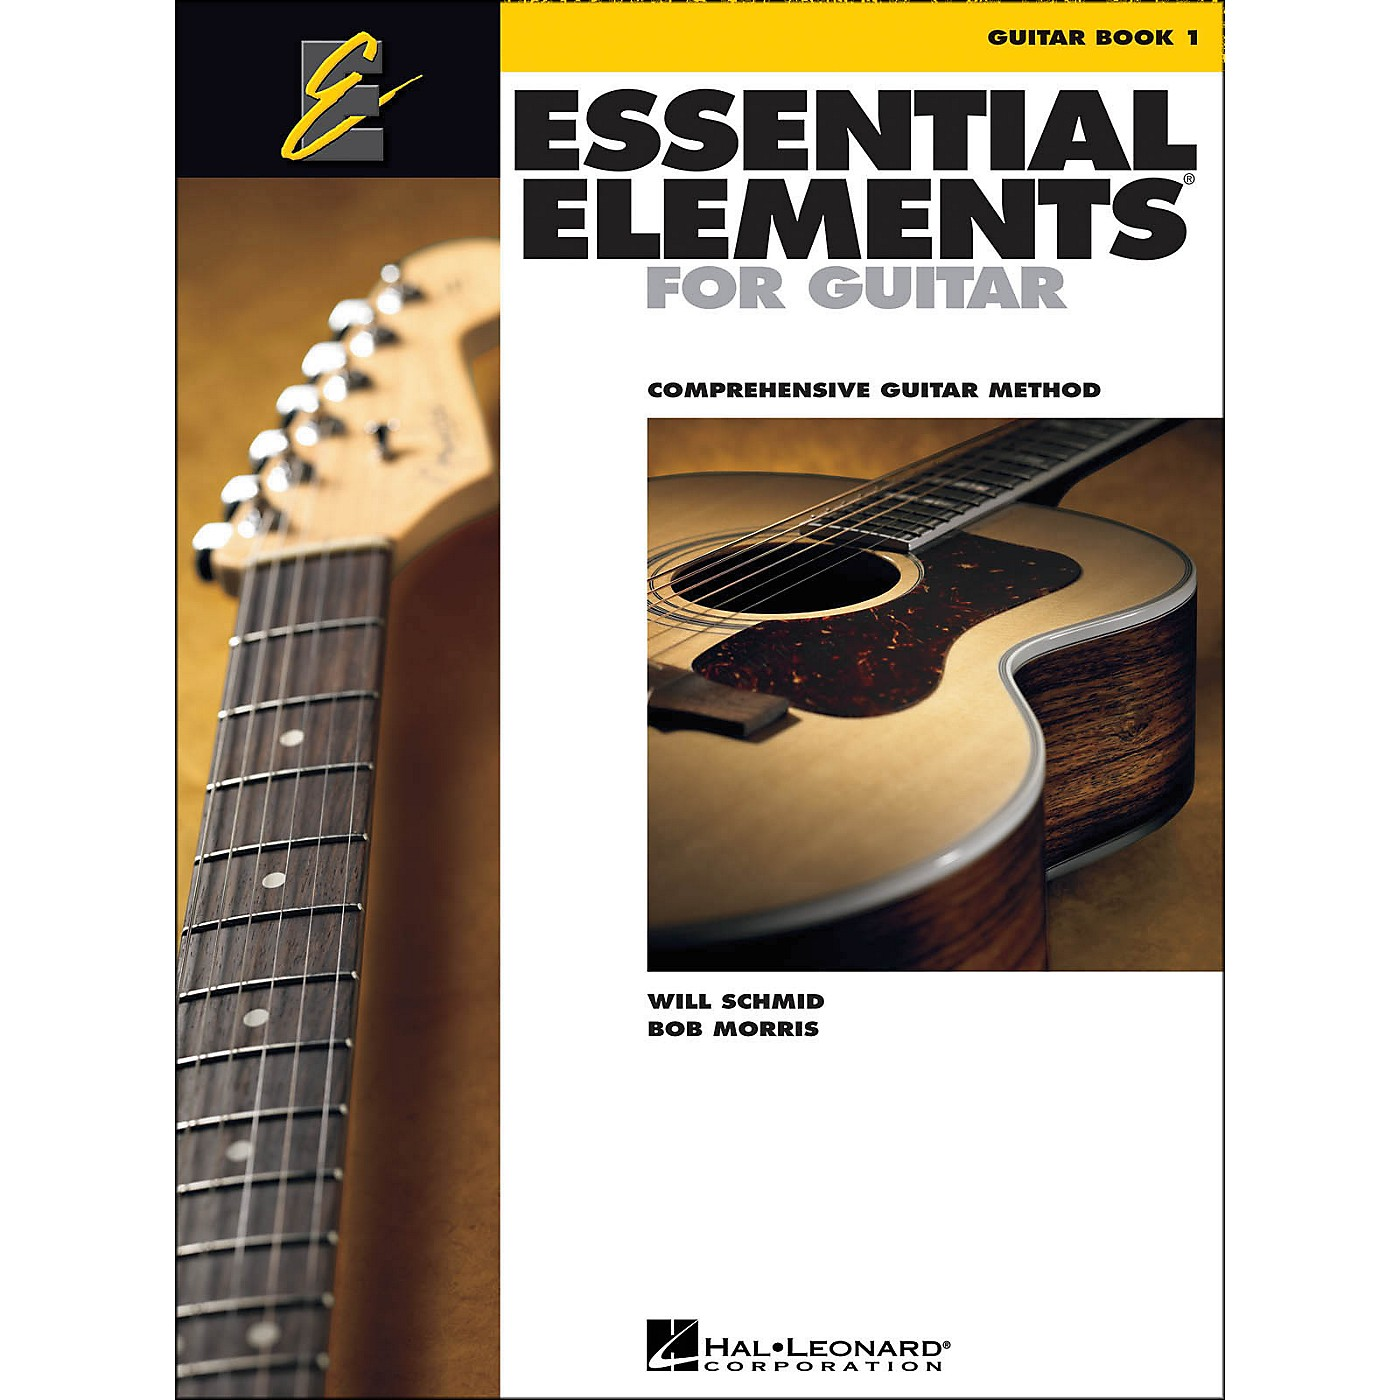 Hal Leonard Essential Elements for Guitar Book 1 (Book Only) thumbnail